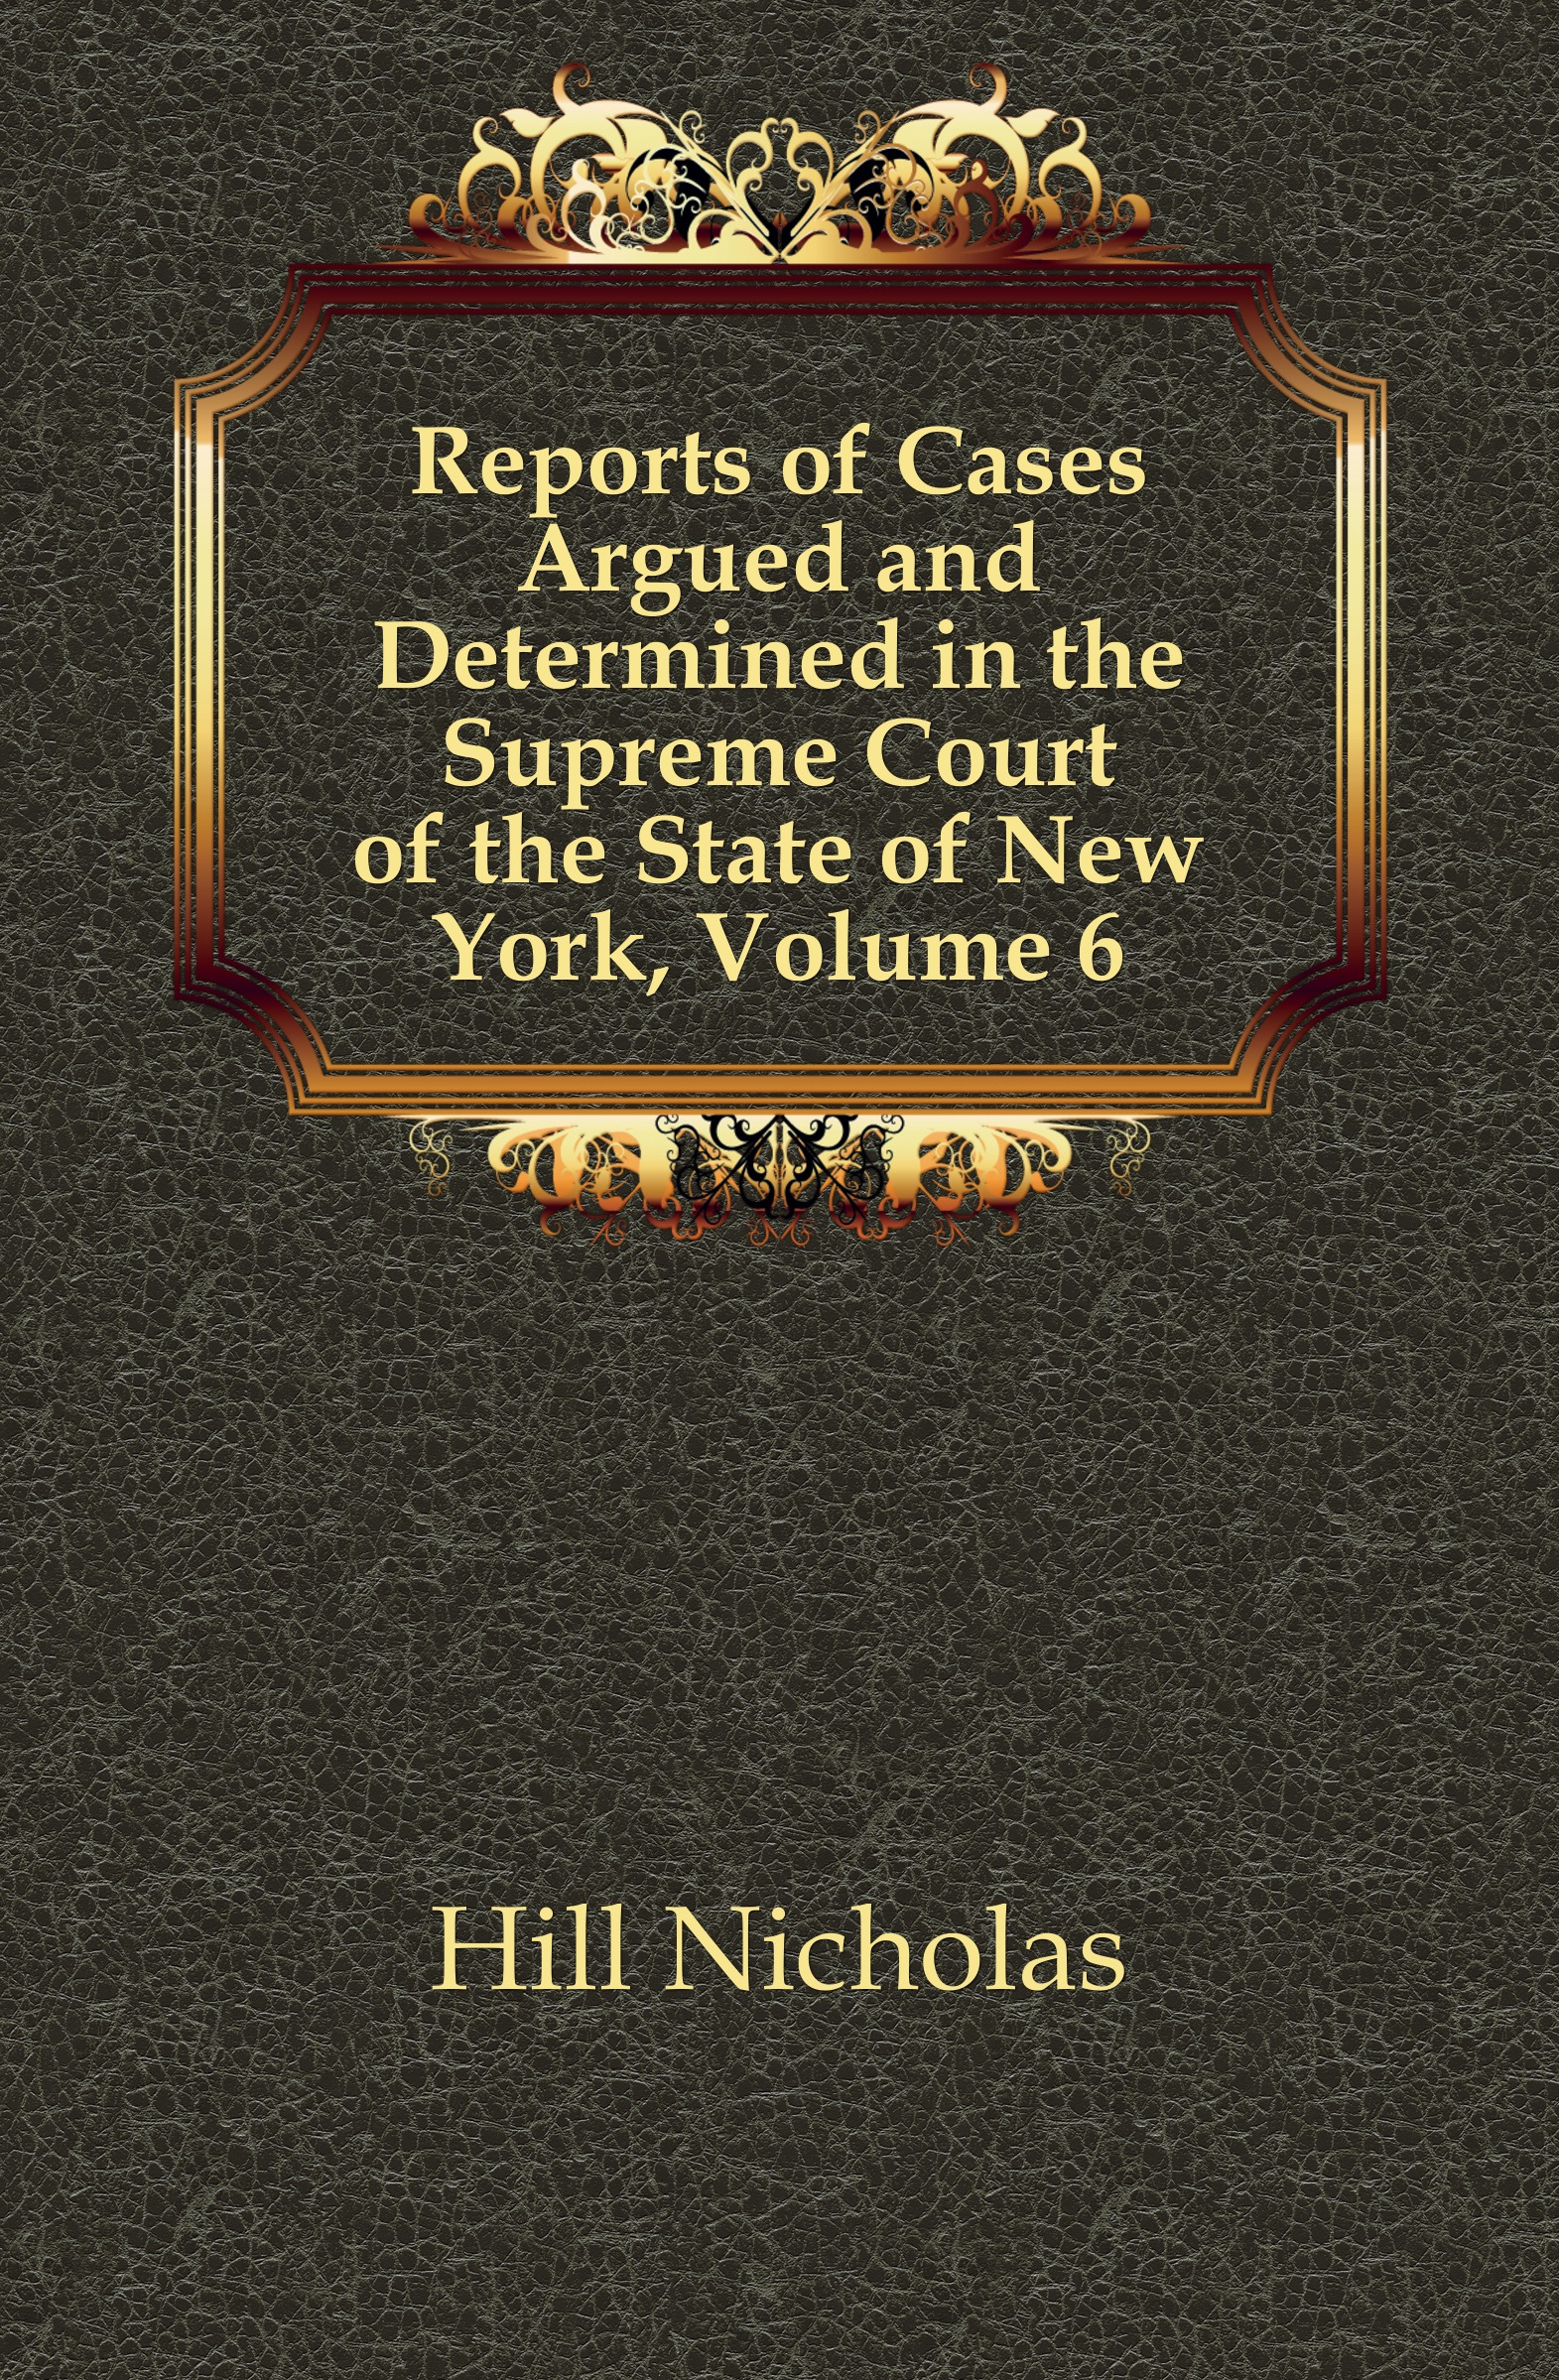 Hill Nicholas Reports of Cases Argued and Determined in the Supreme Court of the State of New York, Volume 6